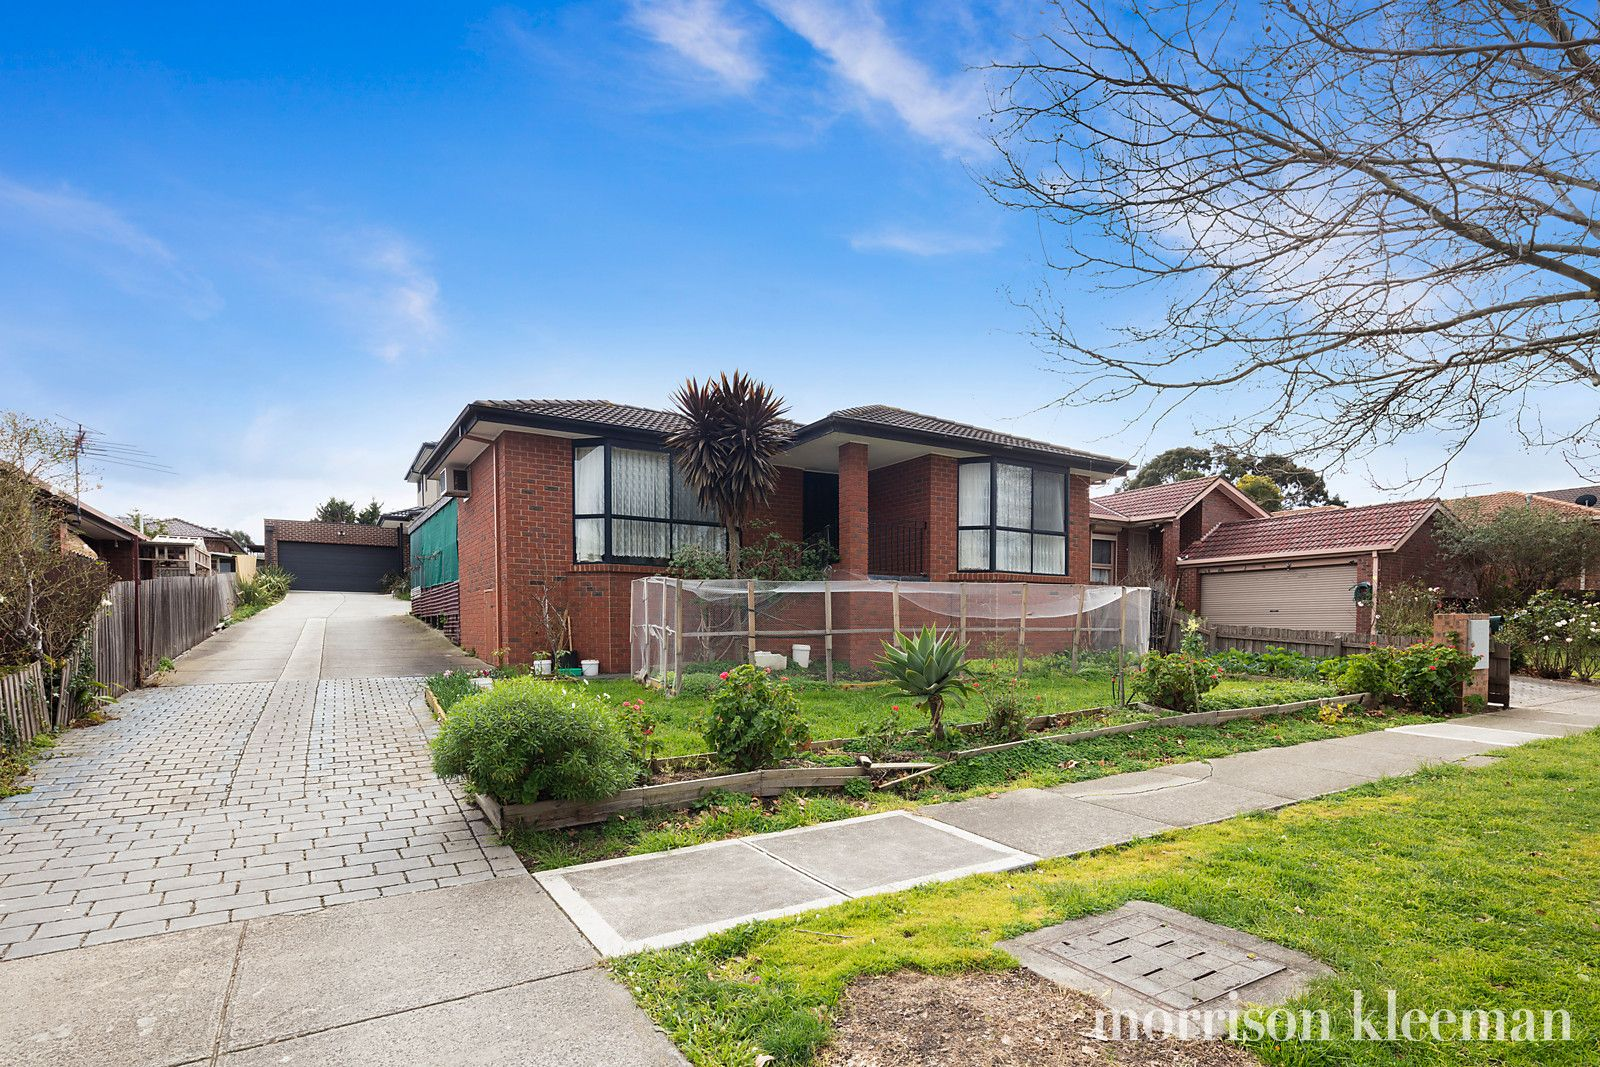 1/47 Shankland Boulevard, Meadow Heights VIC 3048, Image 0